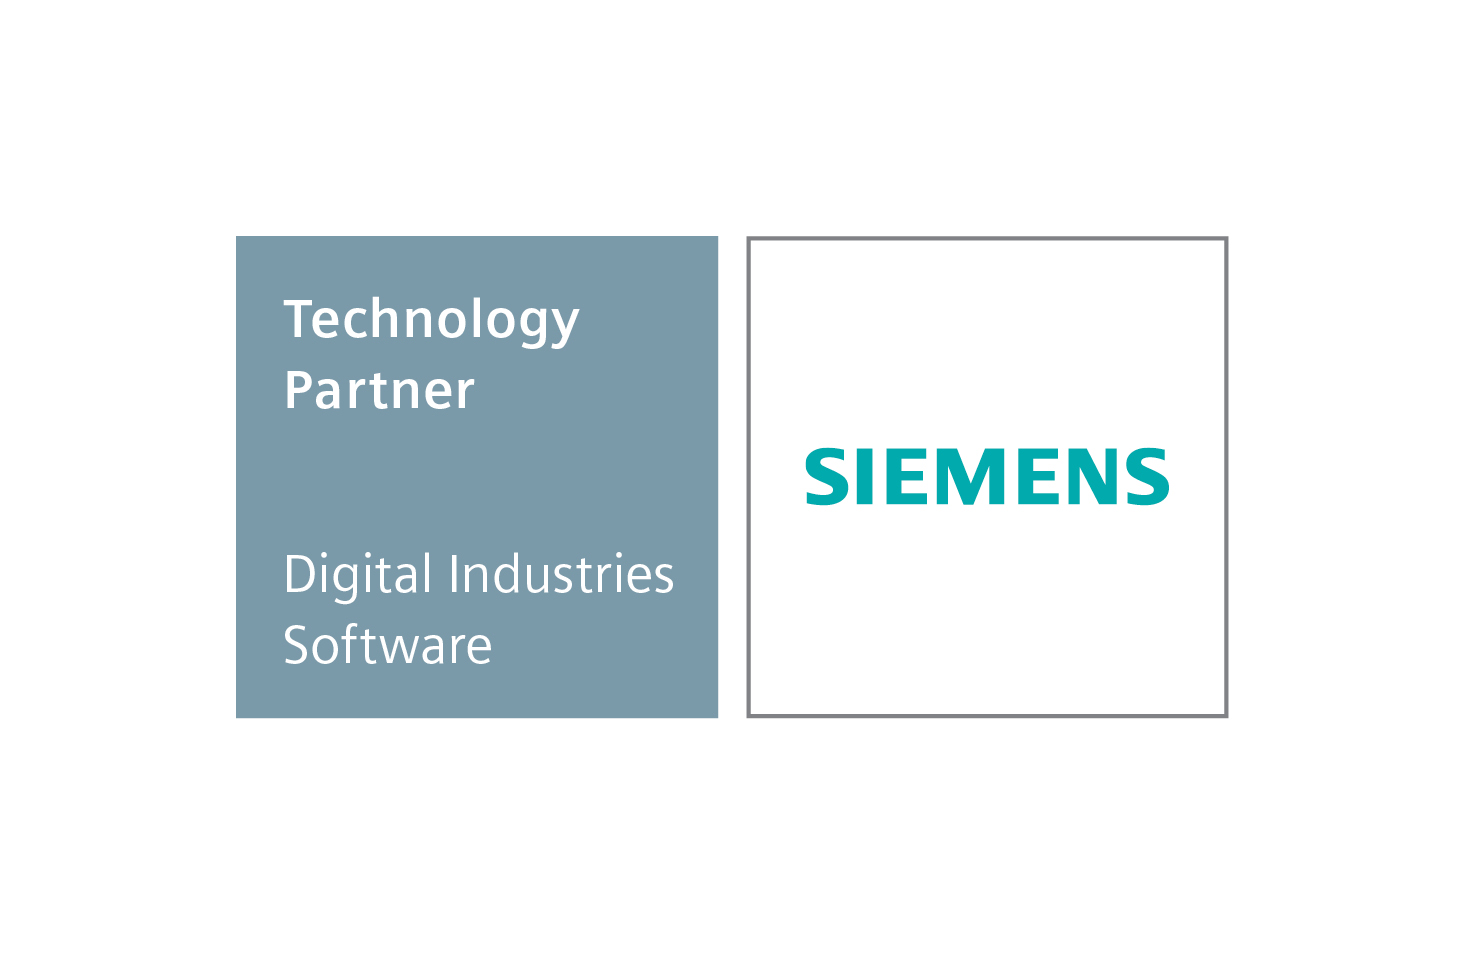 Siemens-solution-partner logo